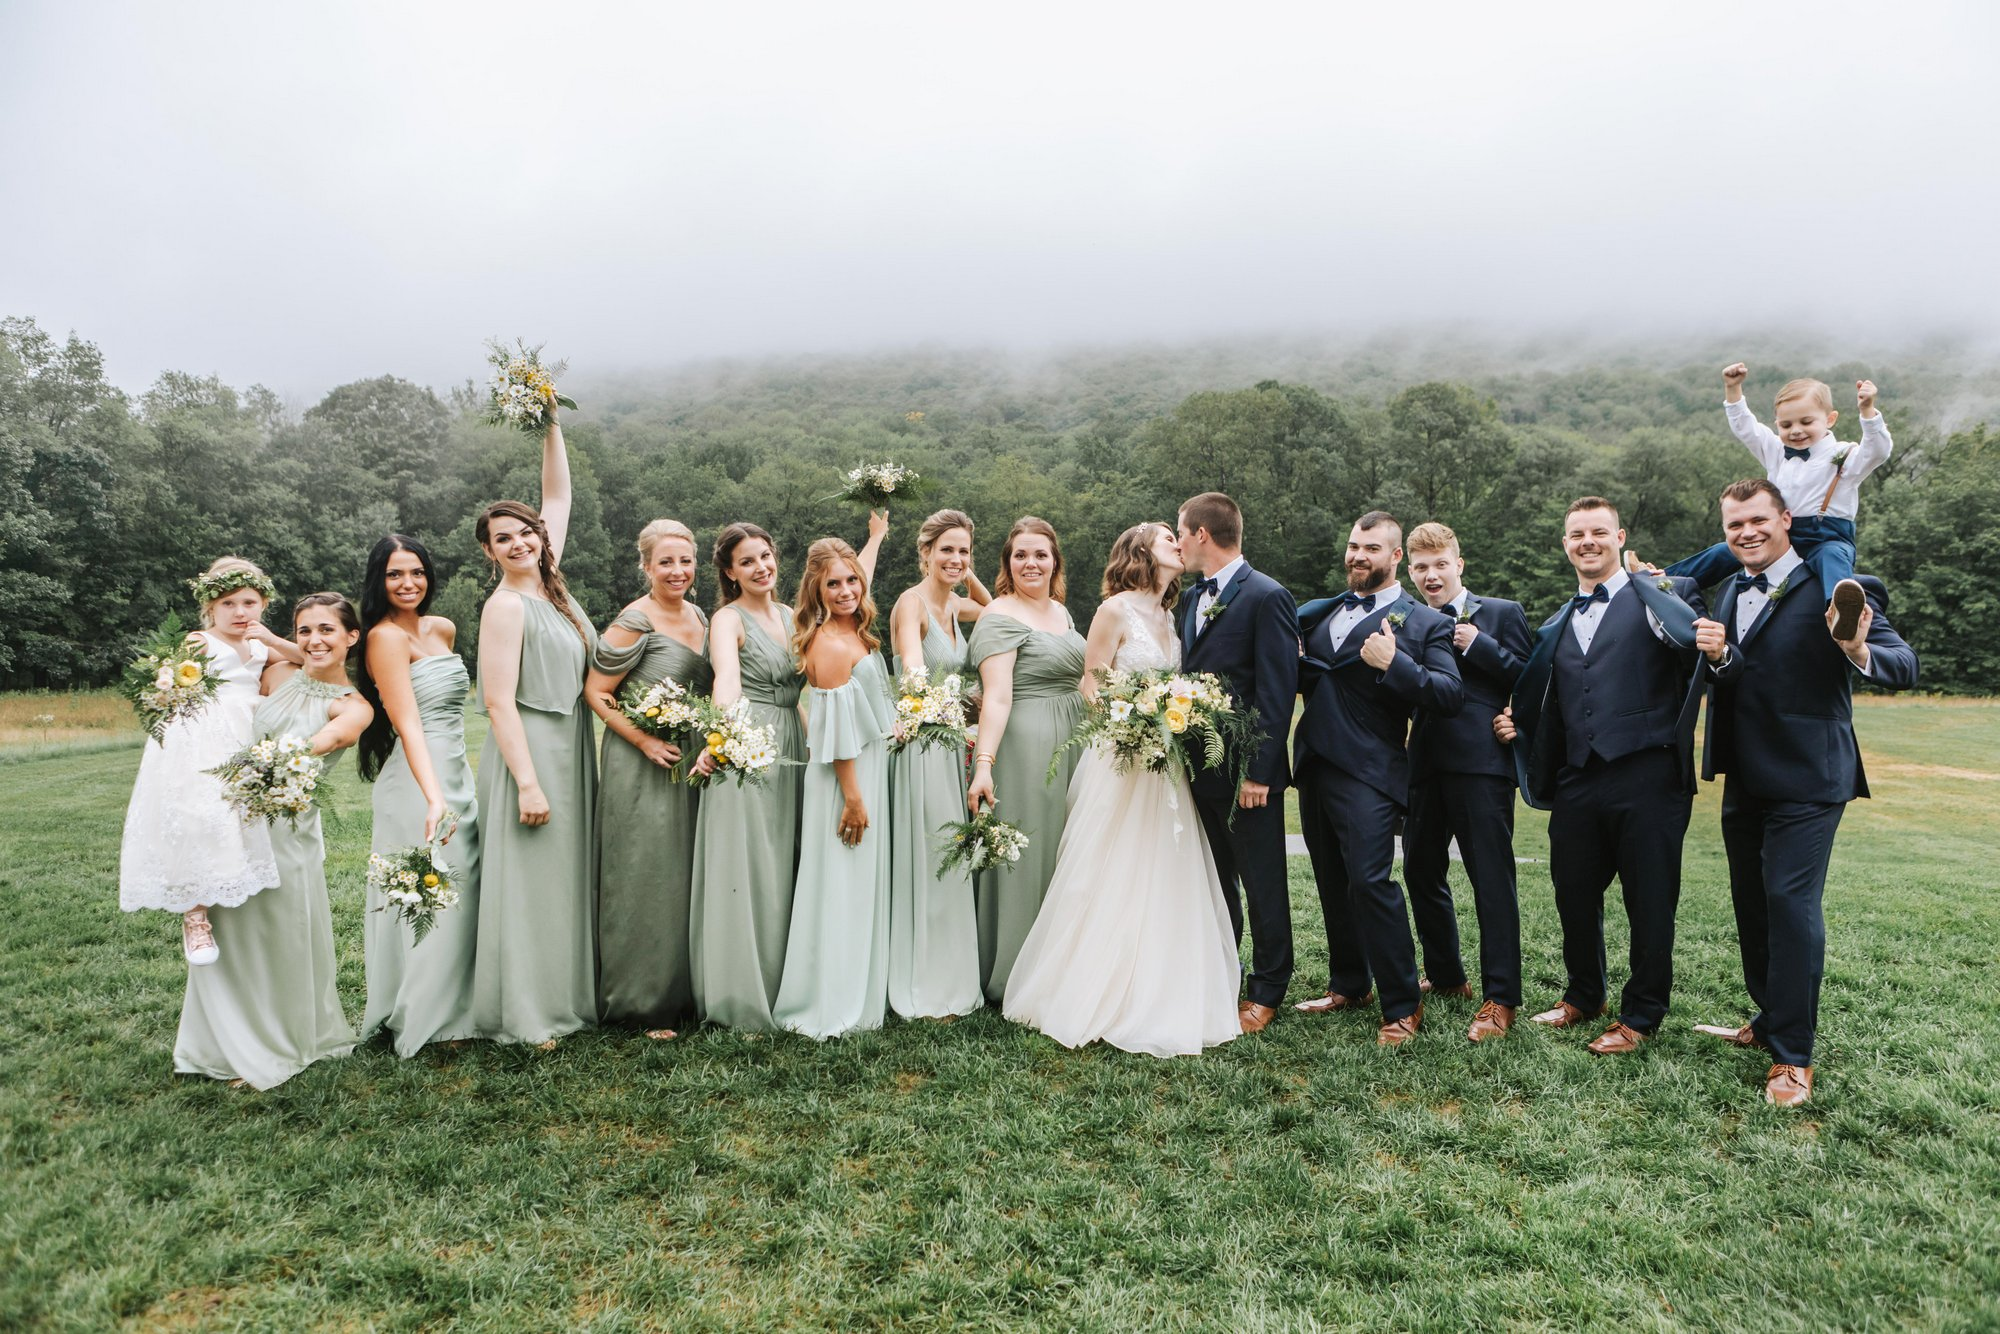 Bloom-Meadows-Berkshires-Wedding-Lena-Mirisola-14.jpg